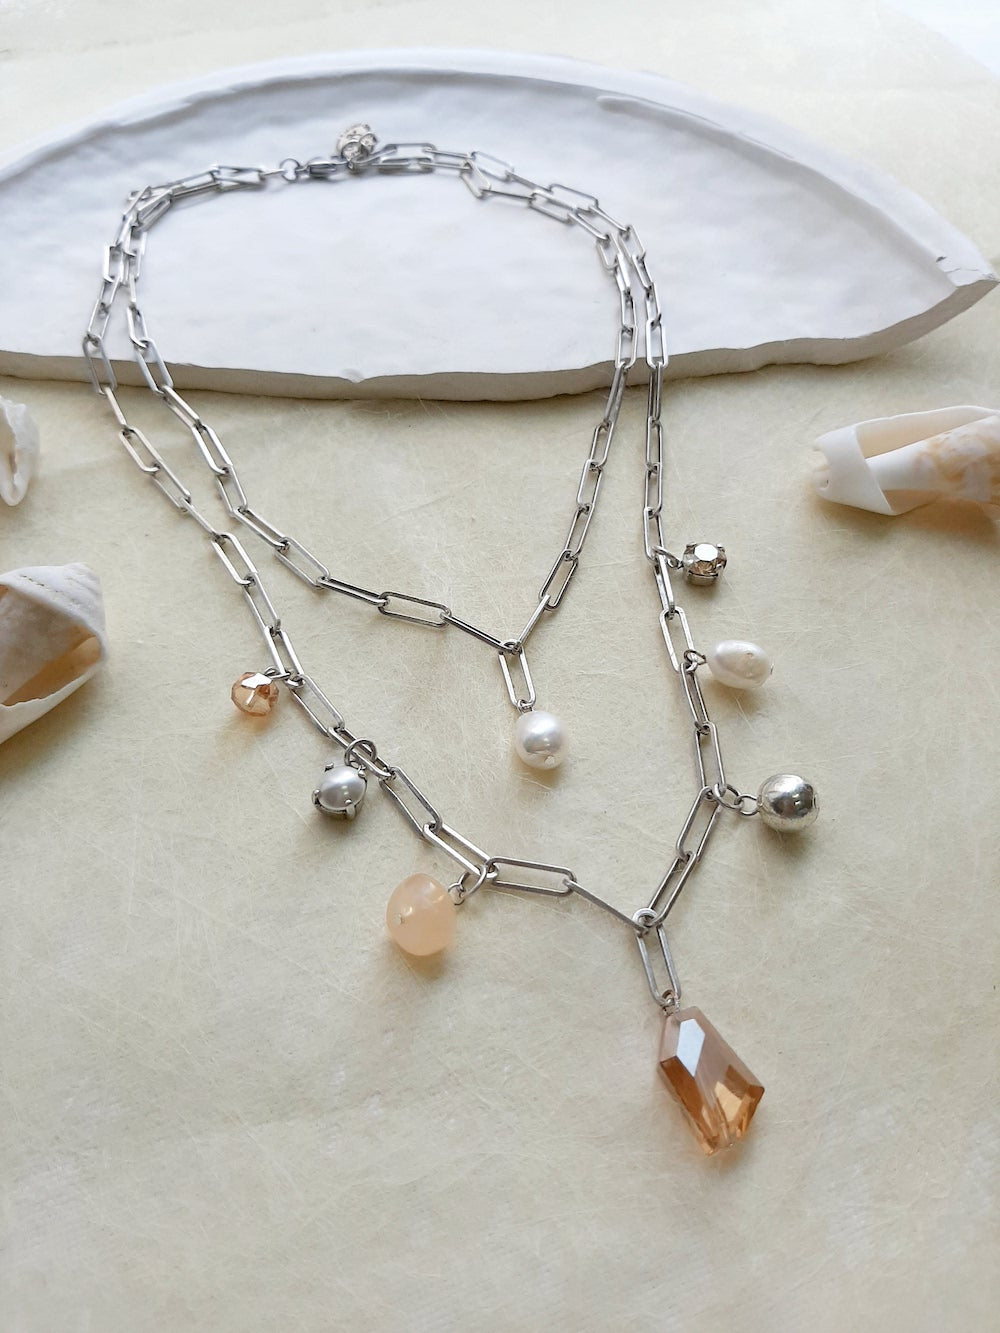 Double layered silver necklace with several drop charms made of Swarovski crystals, pearls & acrylic